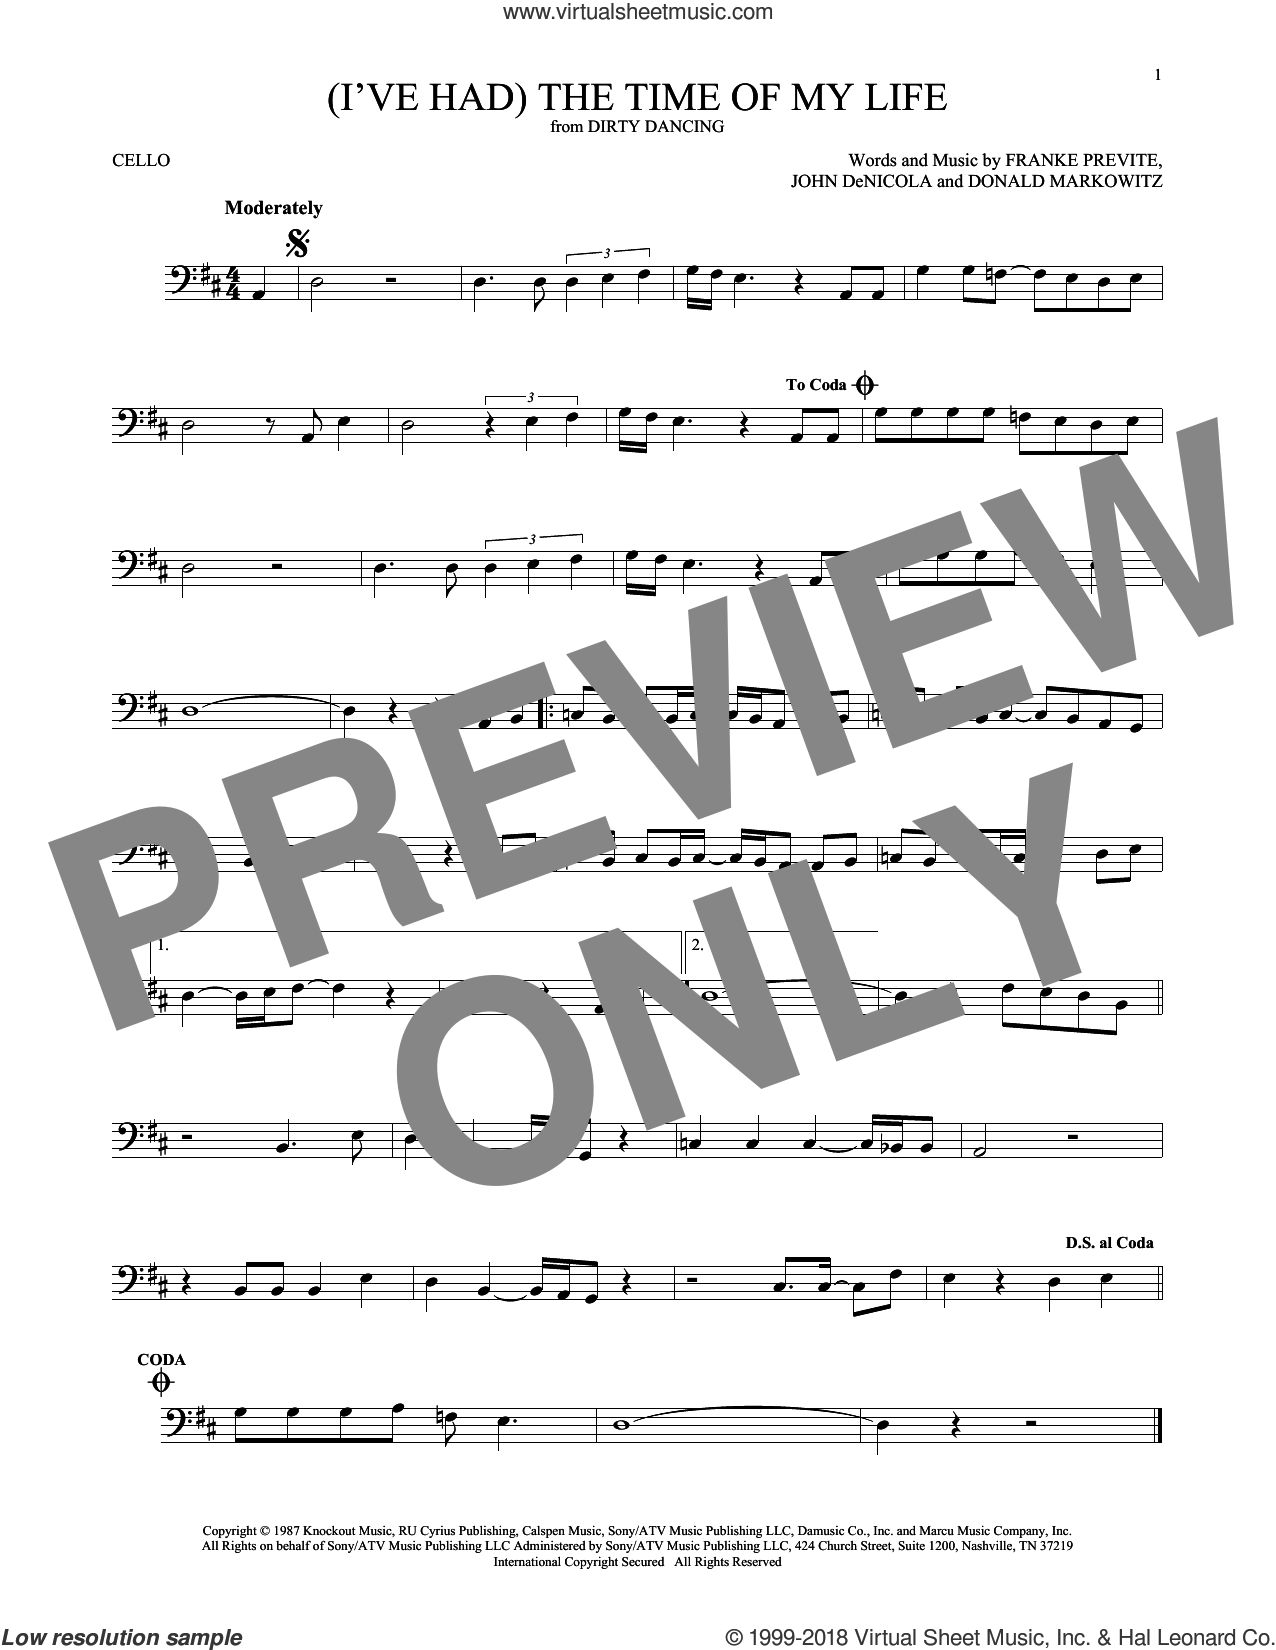 (I've Had) The Time Of My Life sheet music for cello solo by Bill Medley & Jennifer Warnes, Donald Markowitz, Franke Previte and John DeNicola, intermediate. Score Image Preview.